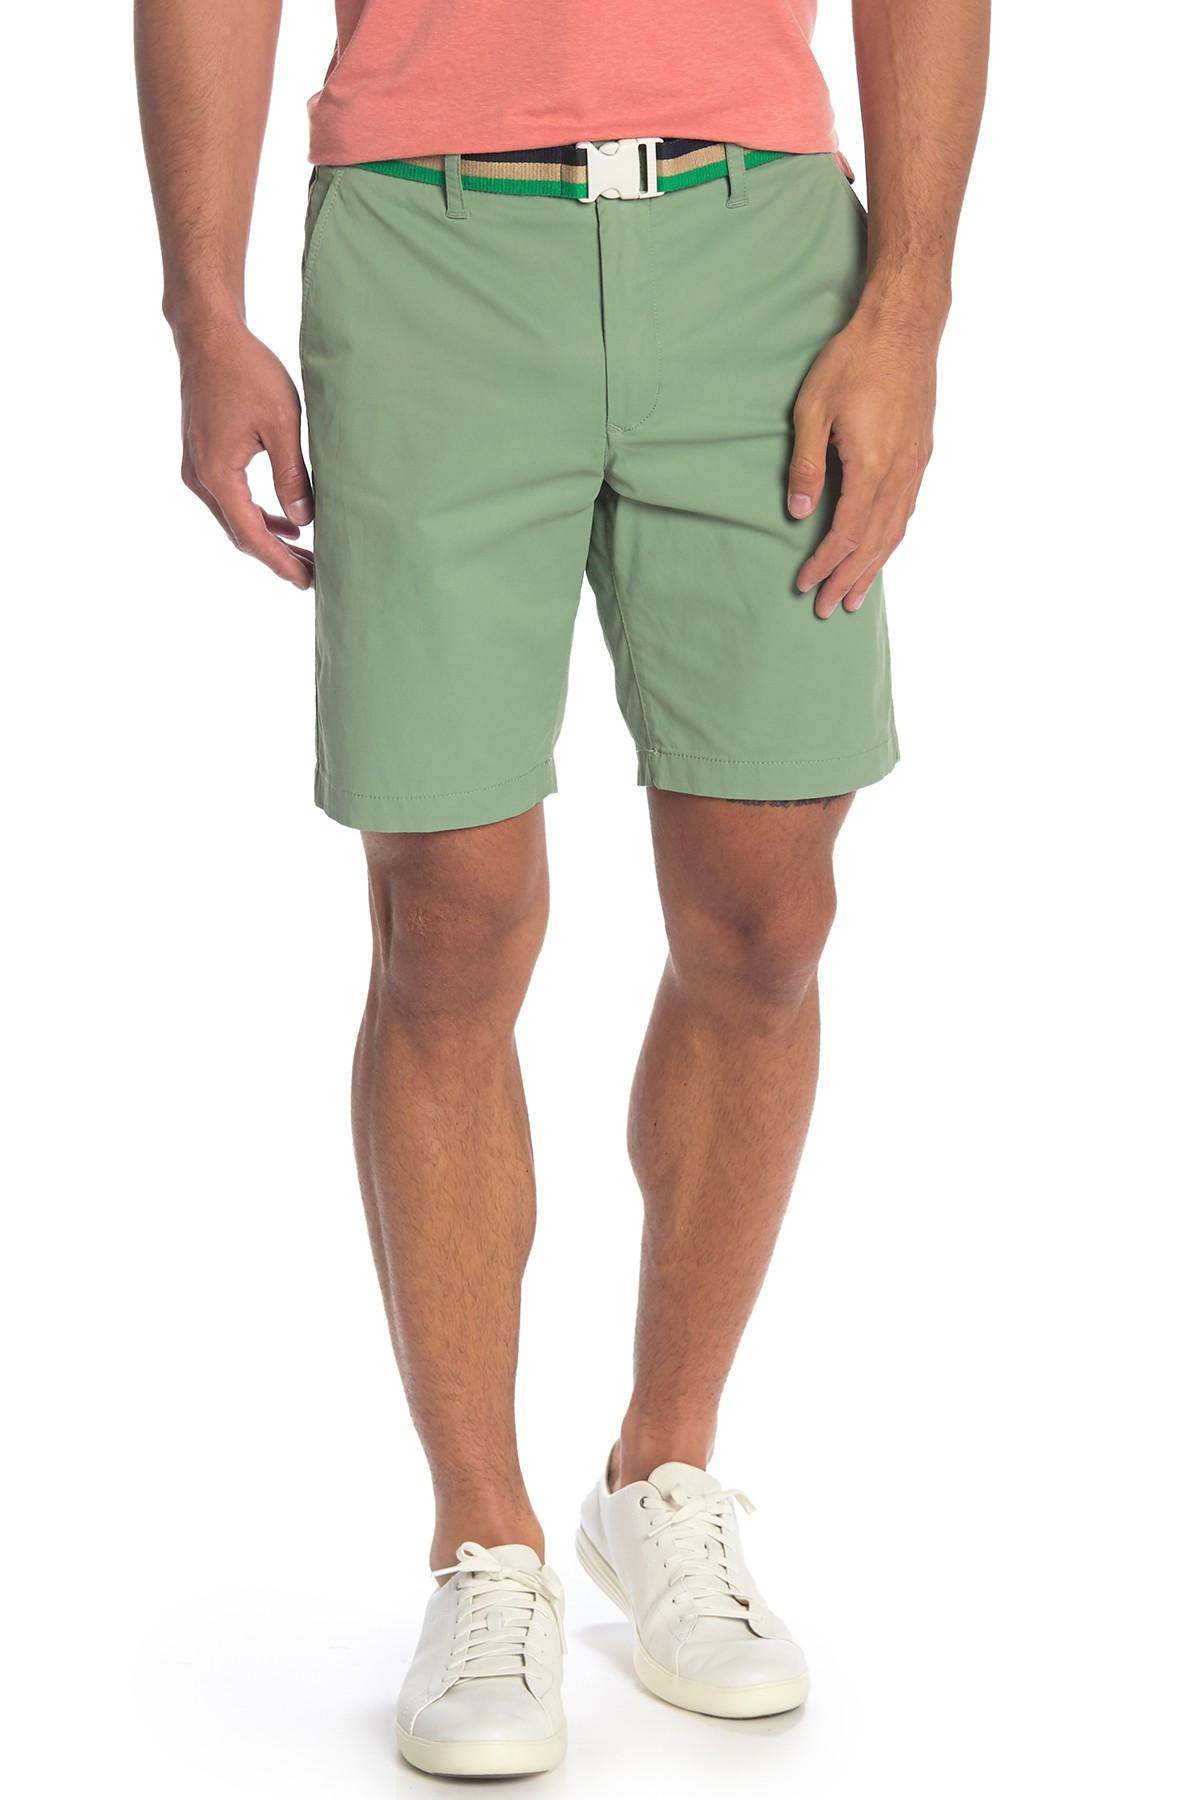 e2088c6b89 Lyst - Tailor Vintage Performance Chino Shorts in Green for Men